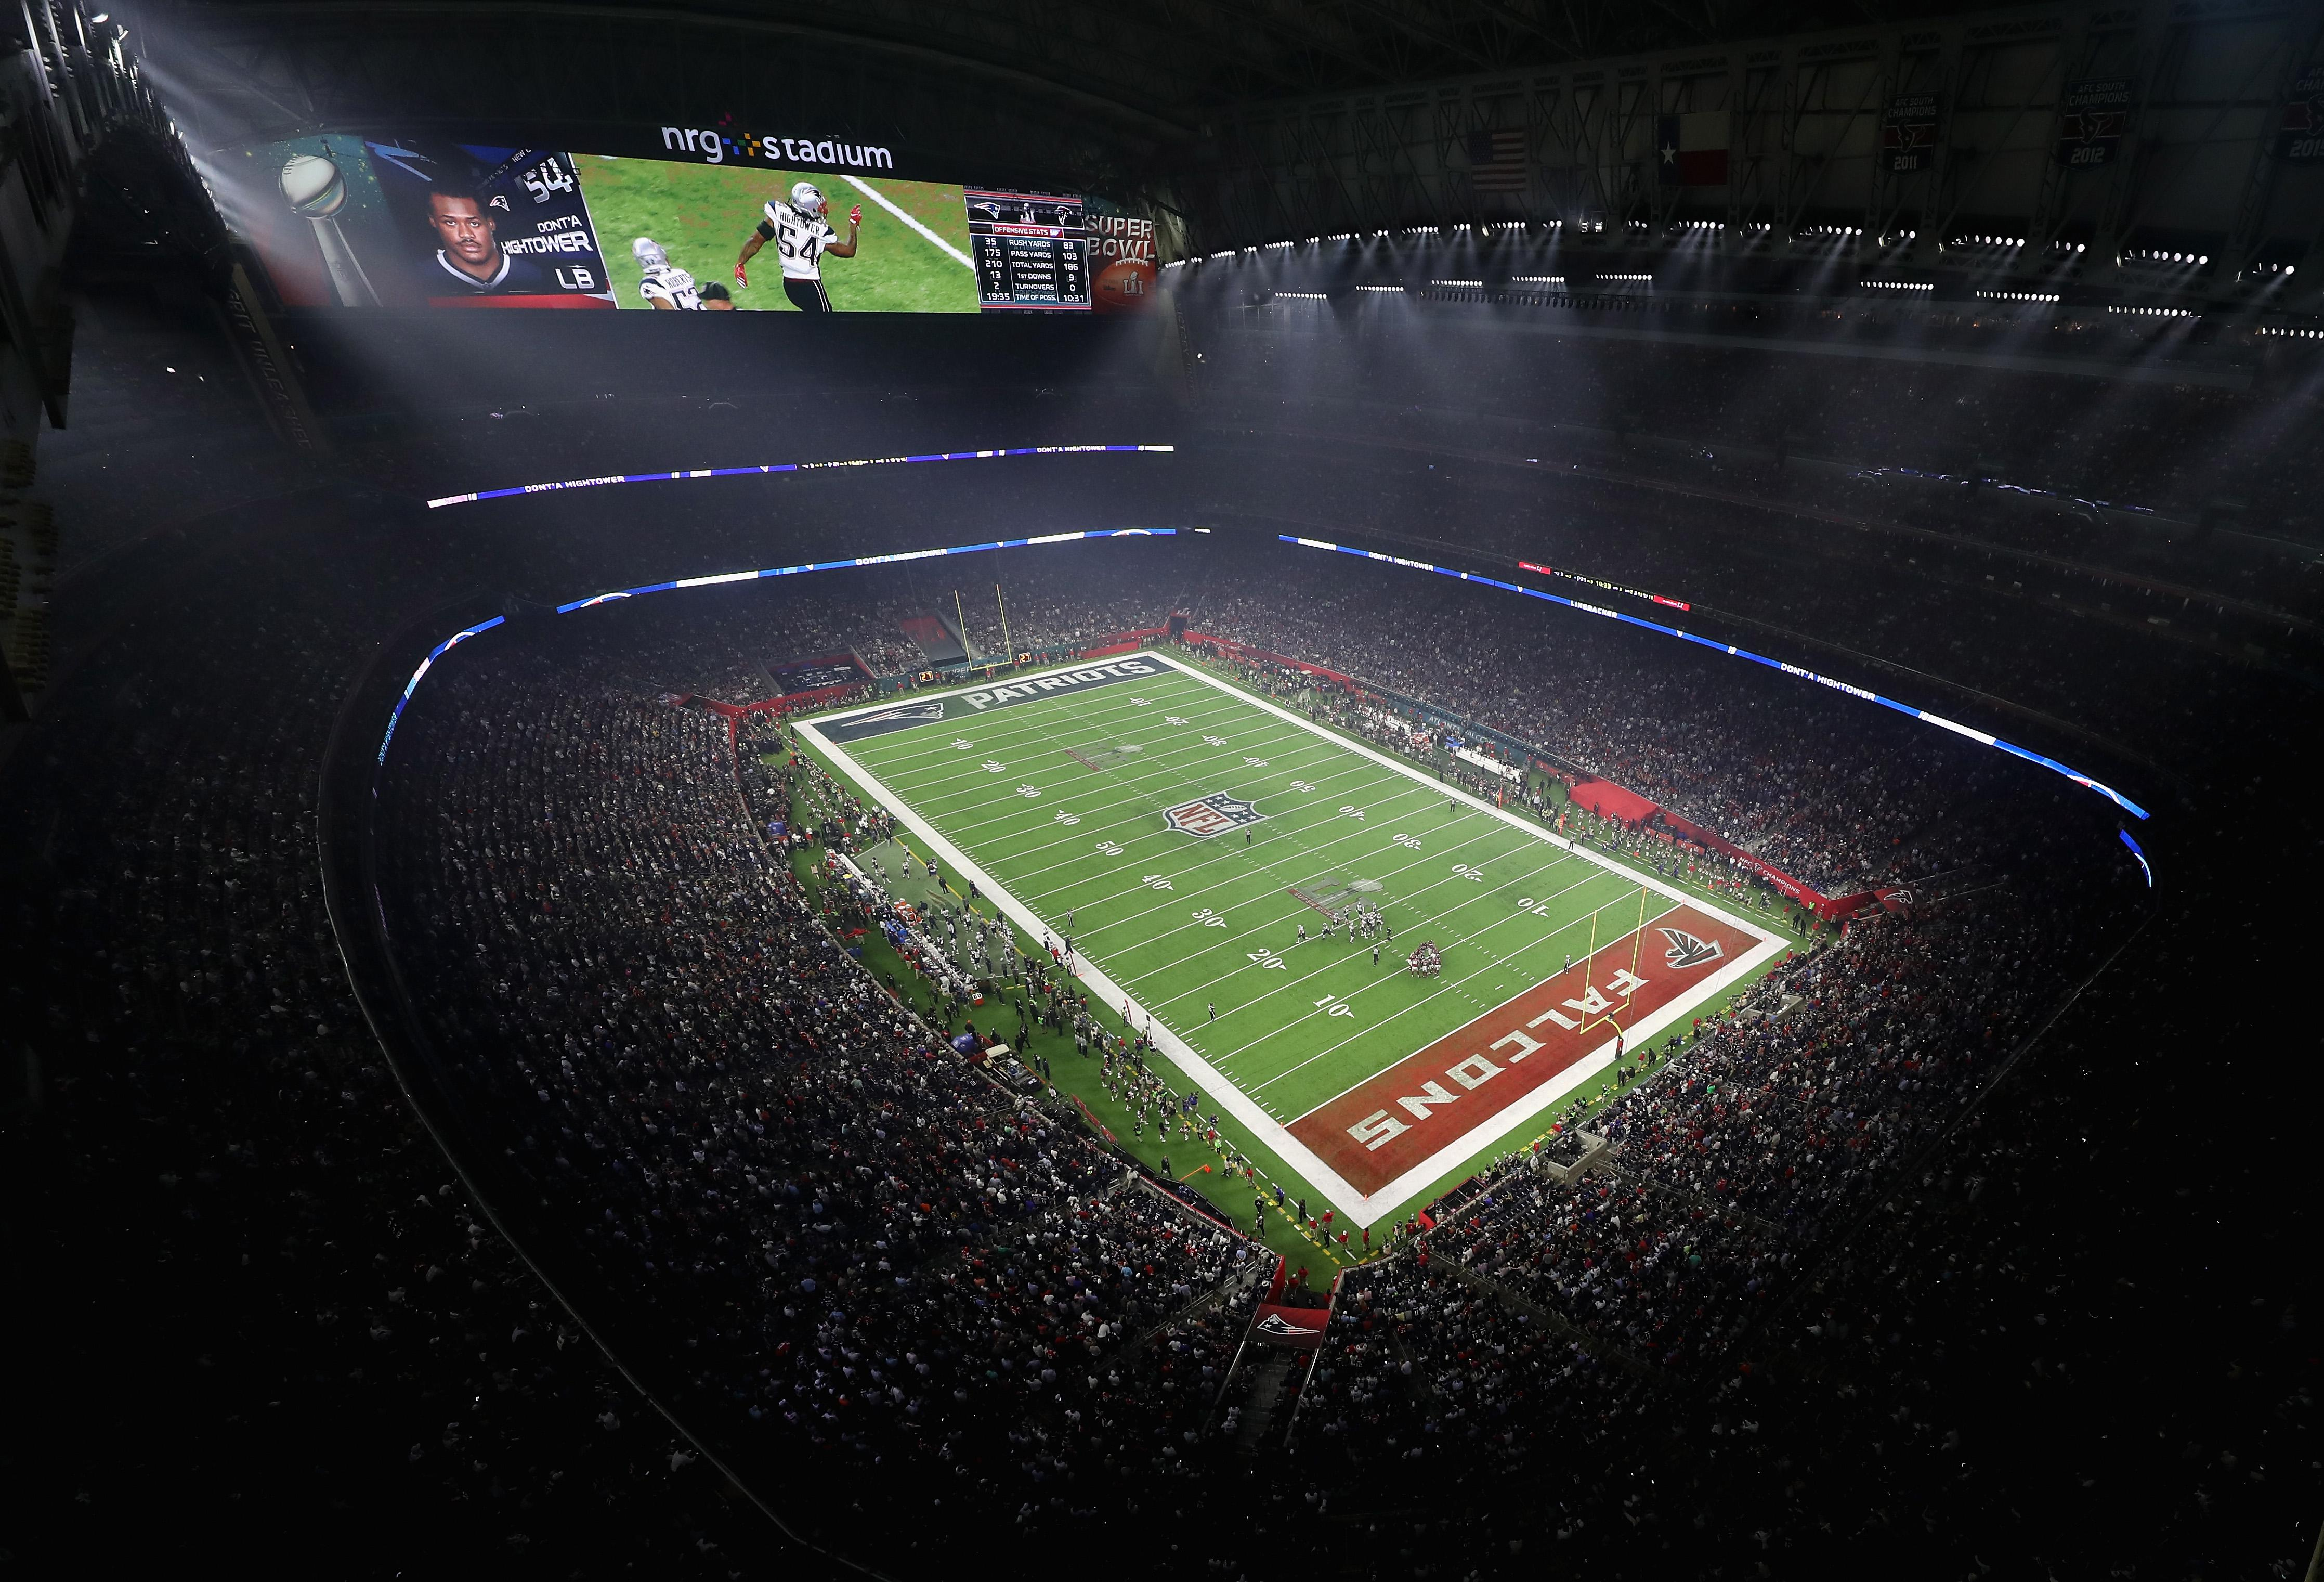 The Super Bowl is the biggest sporting event in the US calendar